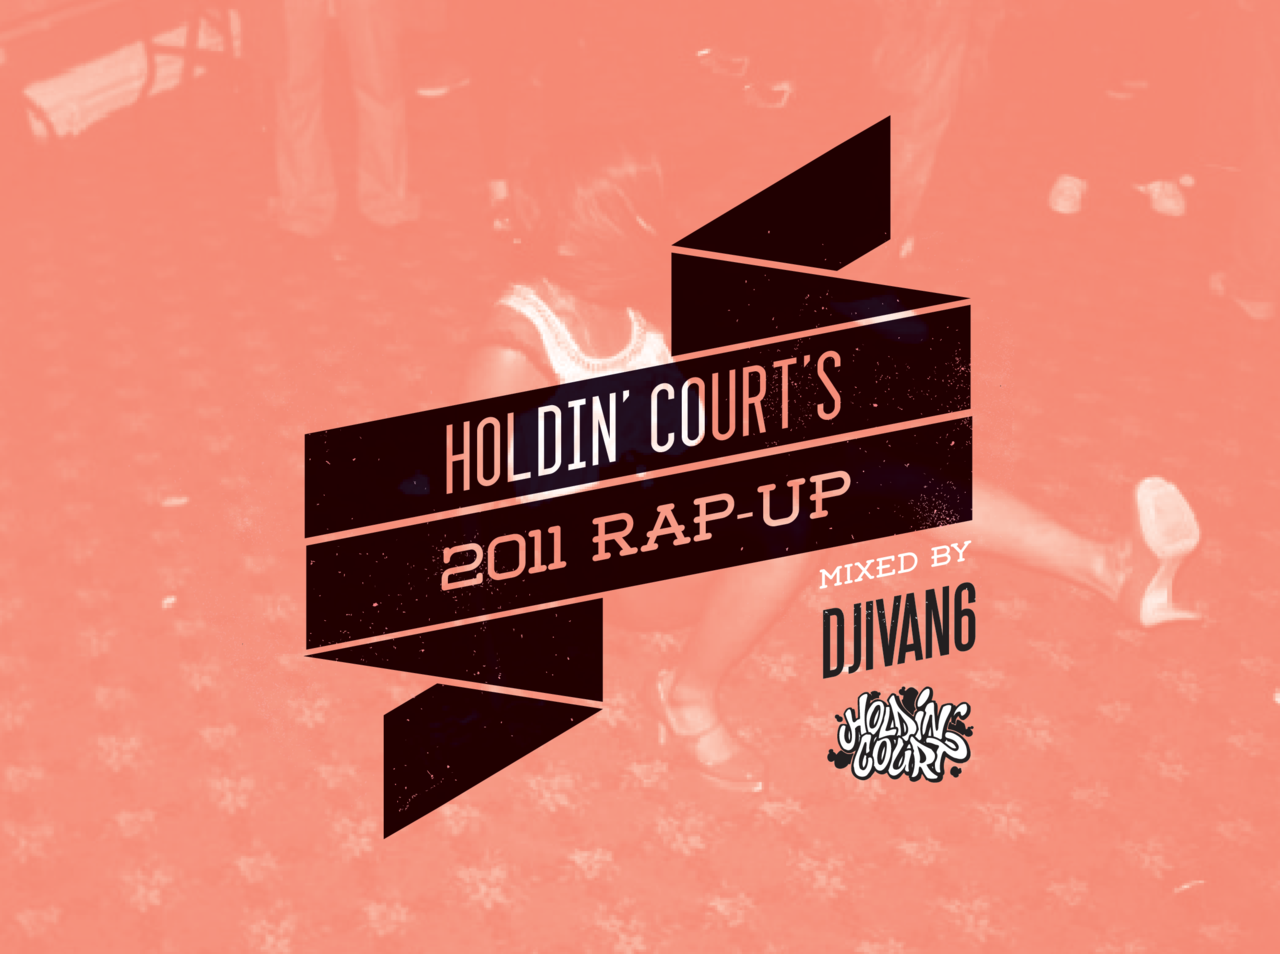 Holdin' Court's 2011 Rap-Up                         Holdin' Court's 2011 Rap-Up contains what we feel are some of the best Hip-Hop tracks from all over the UK released in 2011.   The mix features: Jehst / SonnyJim / Bad Taste Records / IMS / Joey Menza / HashFinger / Knyt / Oliver Sudden & Lazy Tech / Prose / Handbook / Cappo / Dayse & Aver / Natural Selection / The Four Owls.   Mixed by DJ IVAN6.   Click  HERE  to listen.